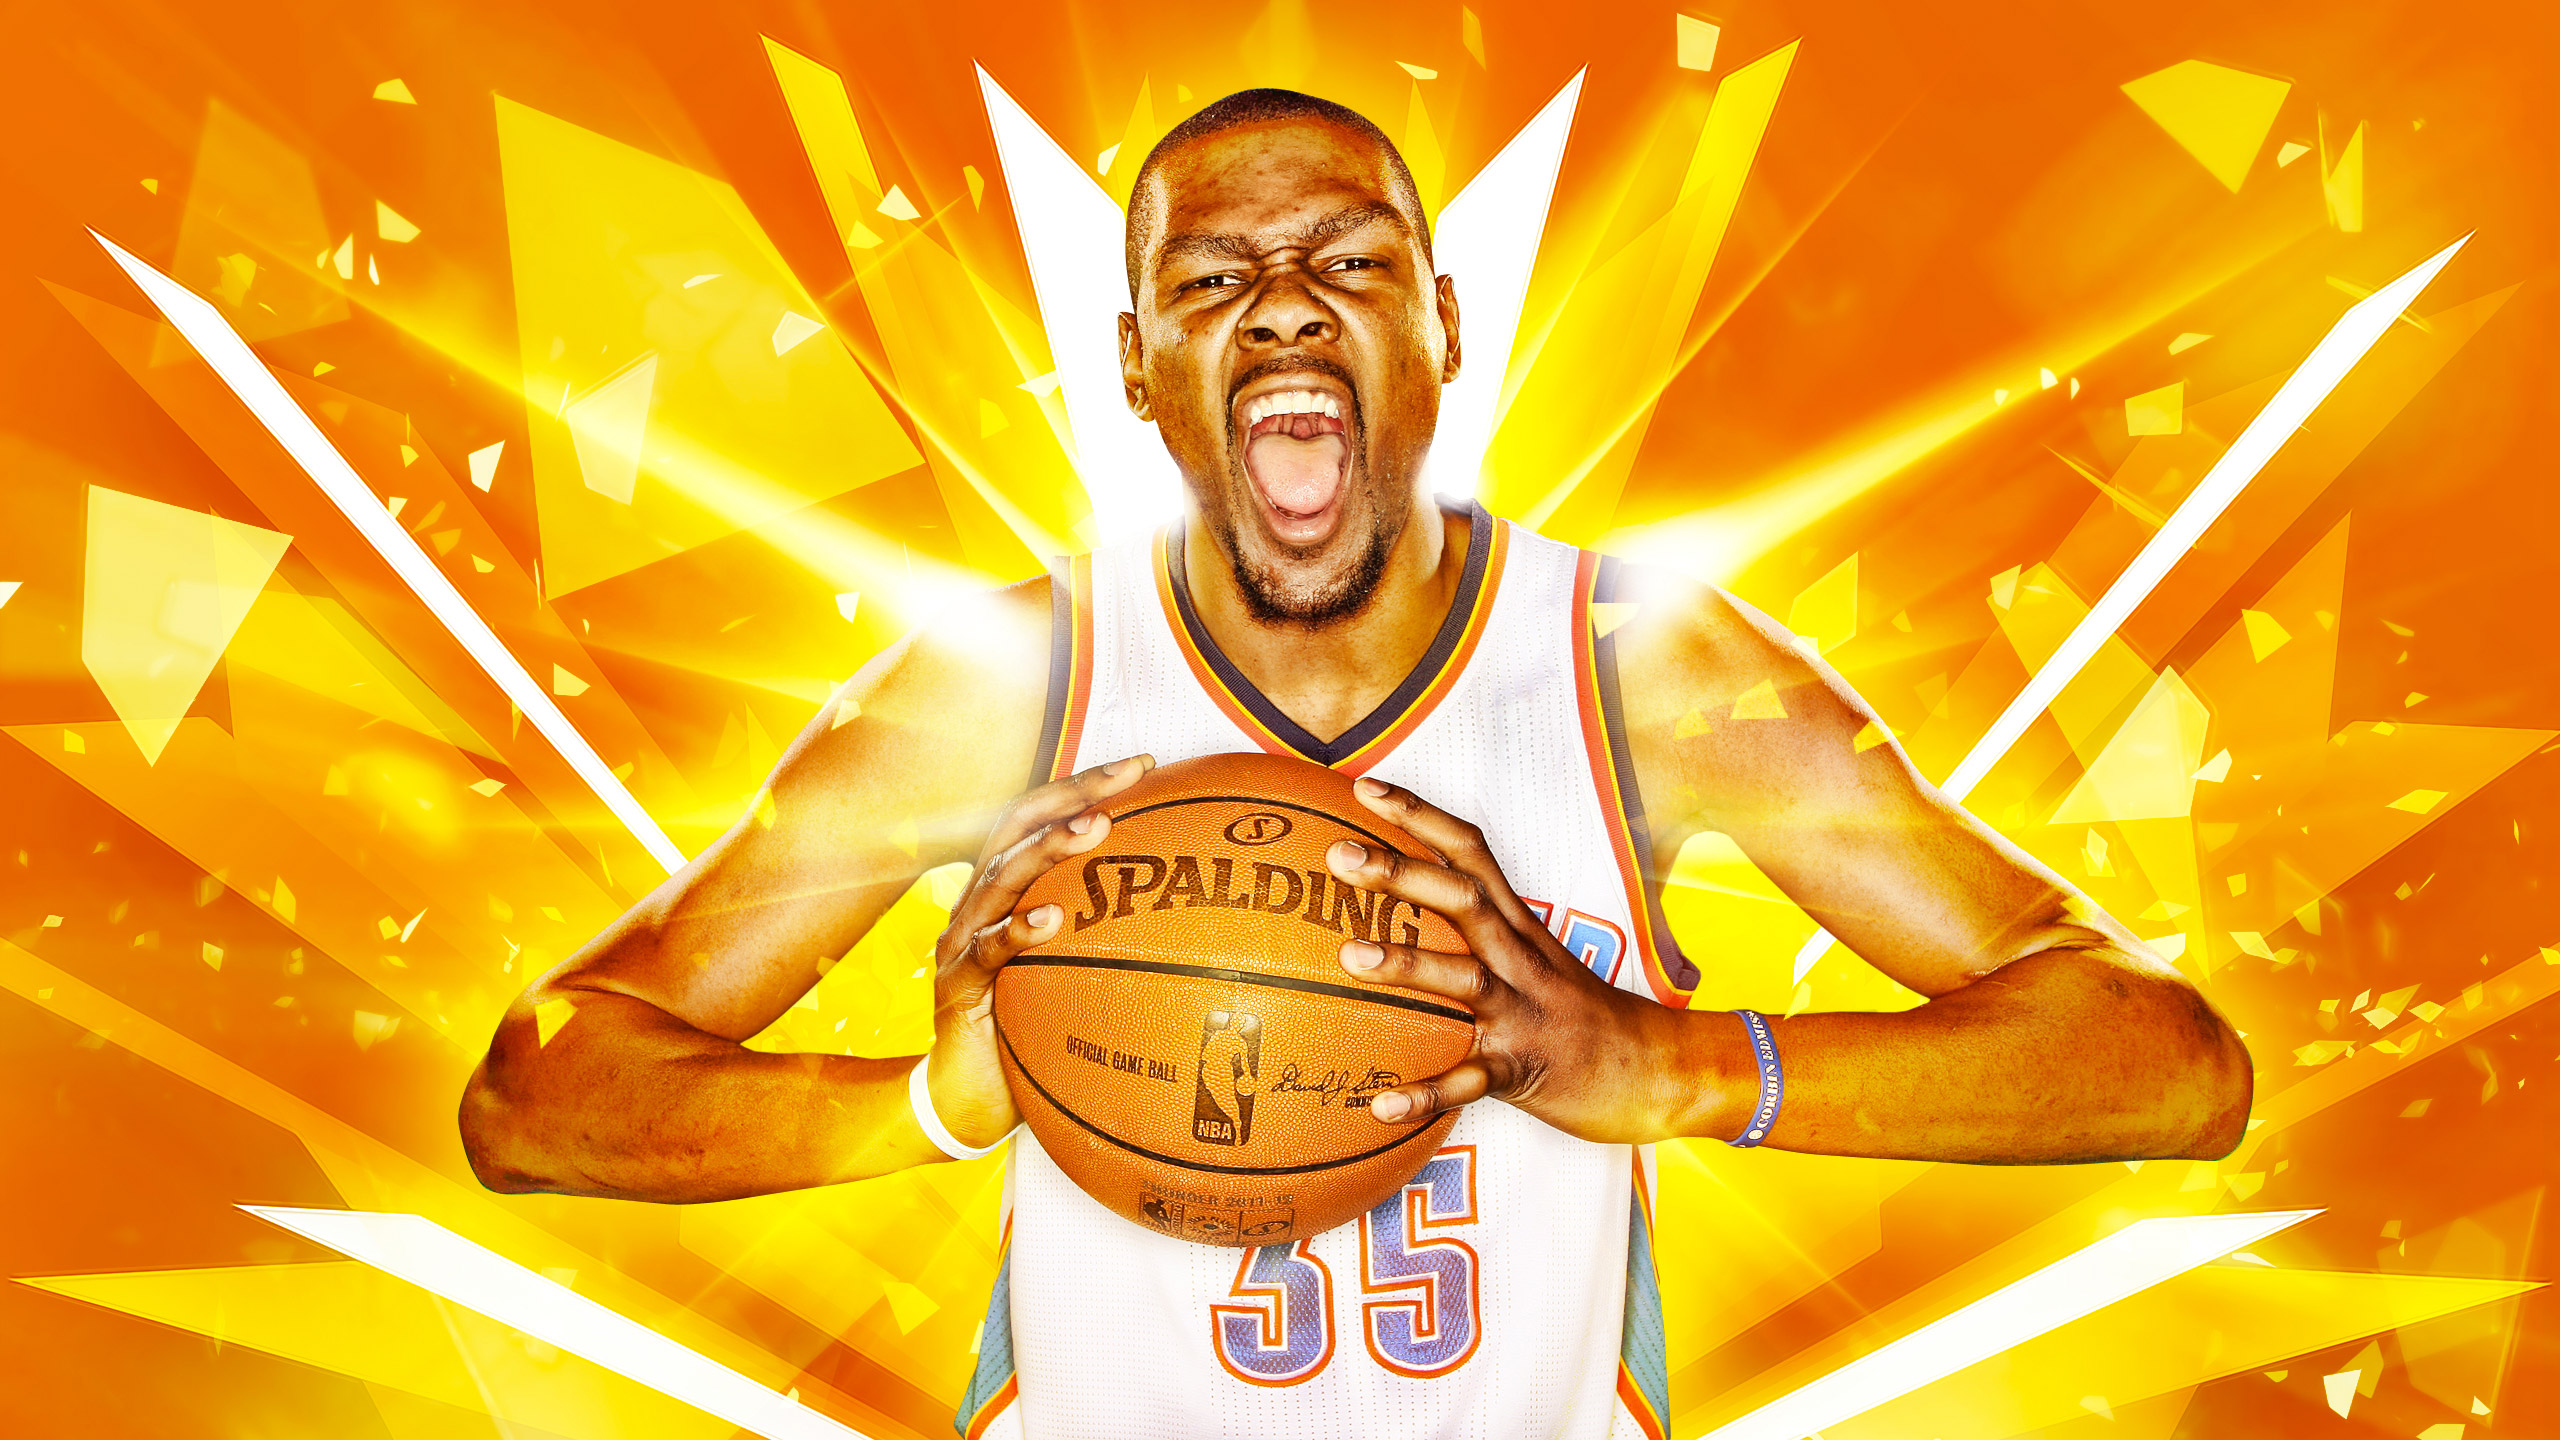 Kevin Durant HD Wallpaper Background Image 2560x1440 ID 2560x1440